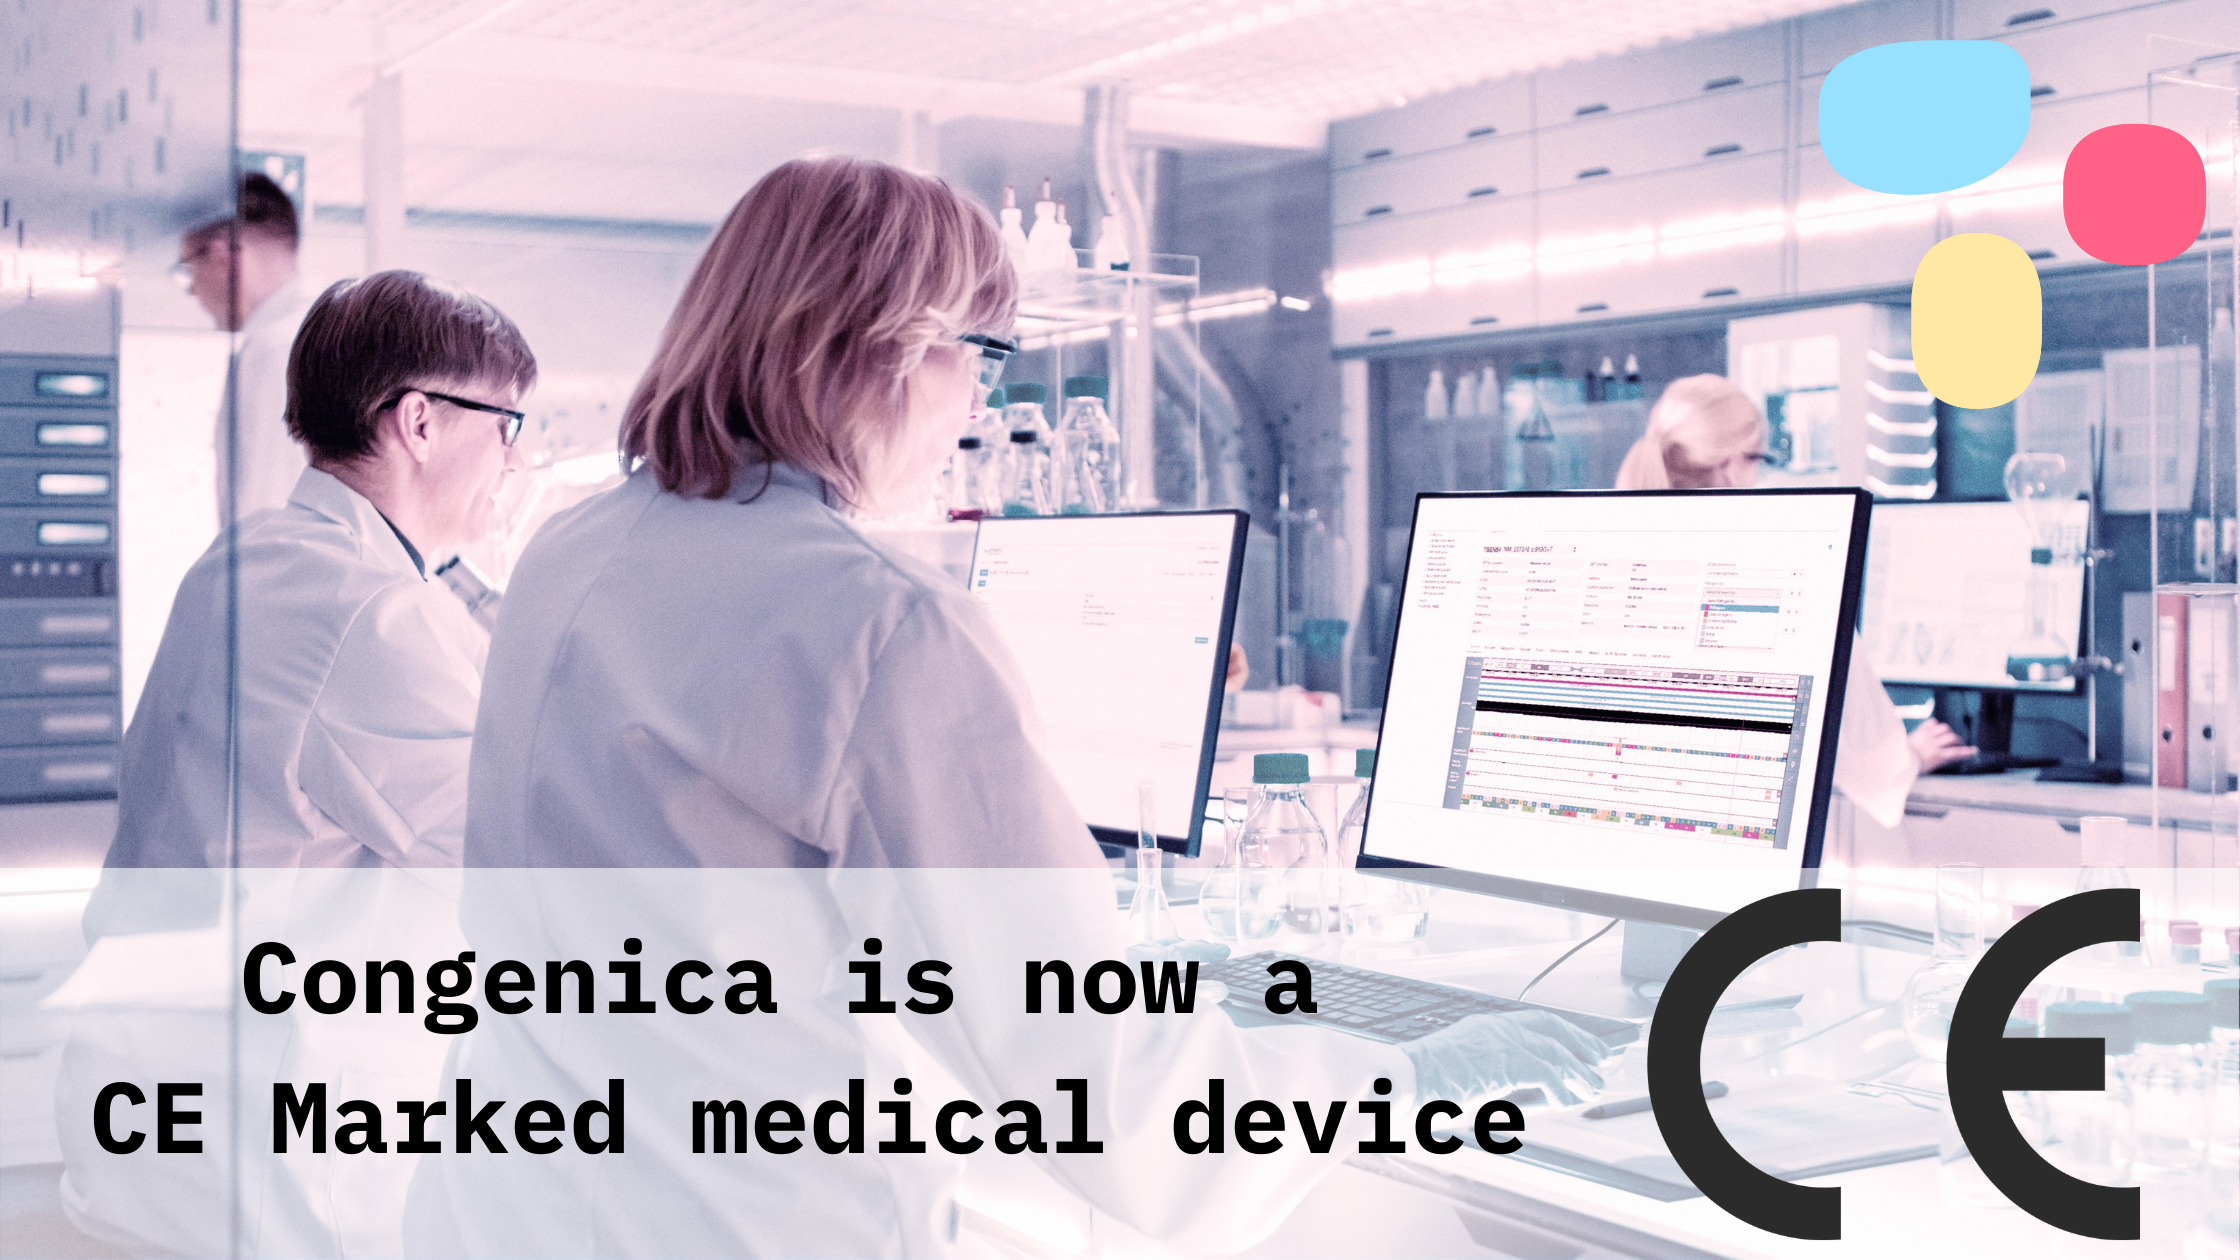 Congenica is now a CE Marked medical device